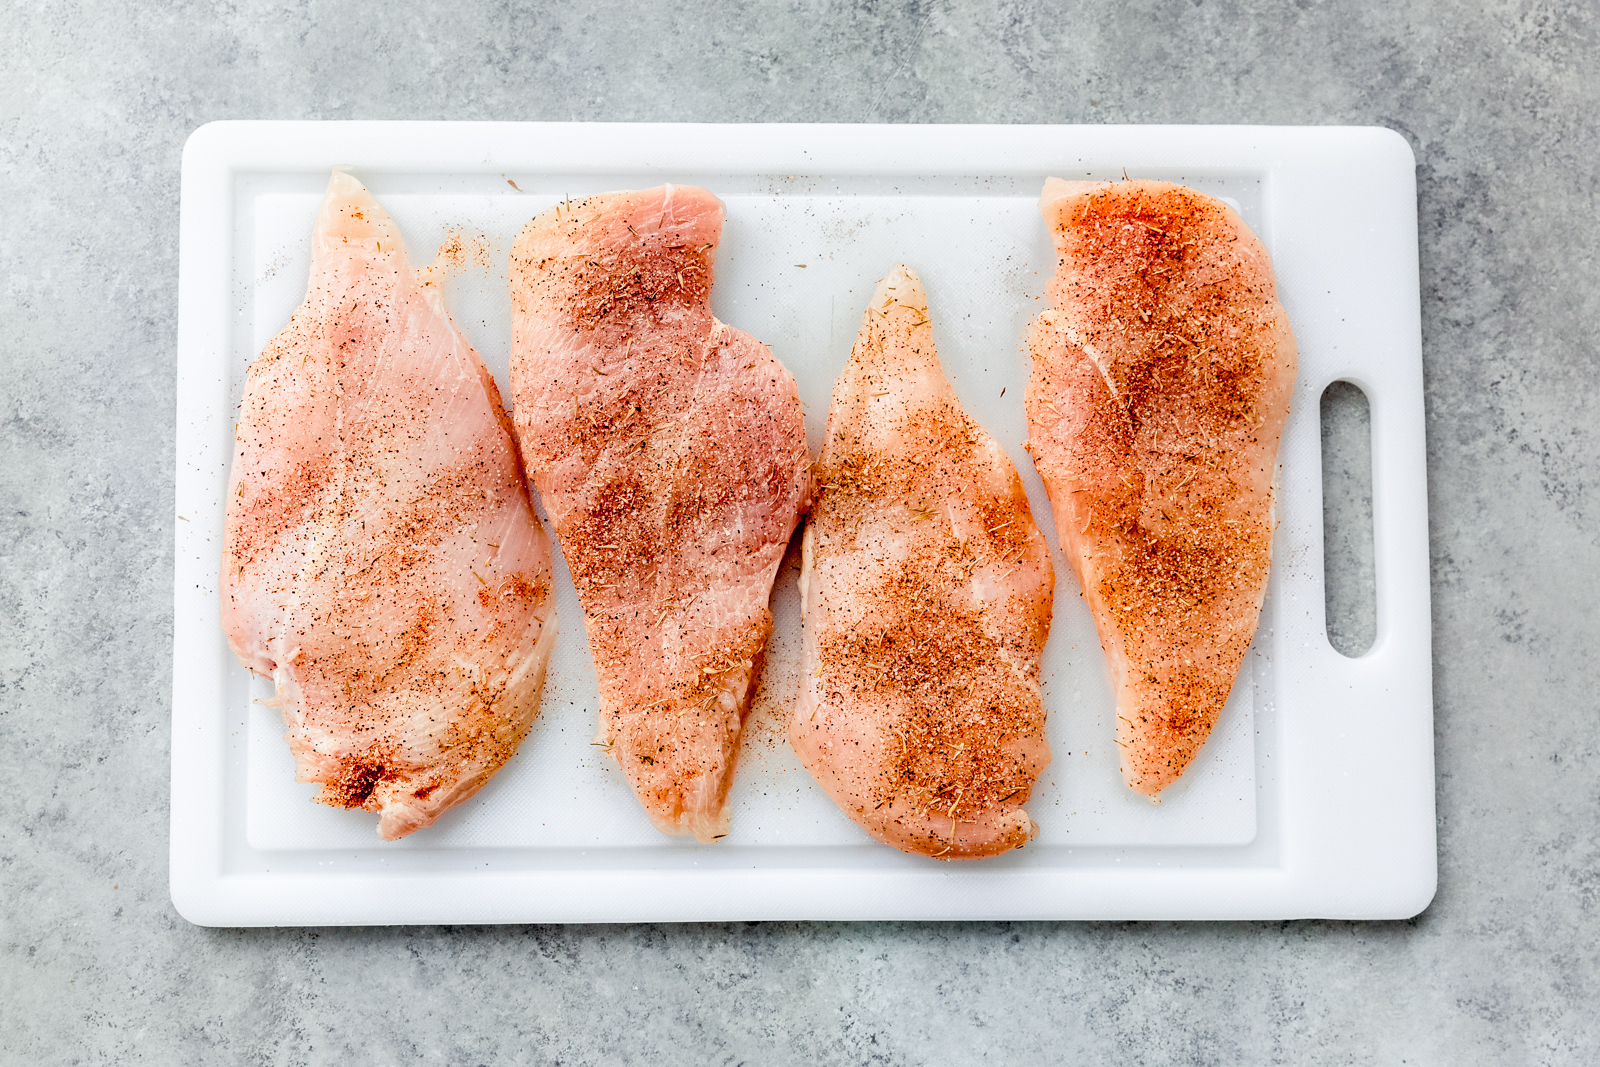 white cutting board with raw chicken sprinkled with seasoning